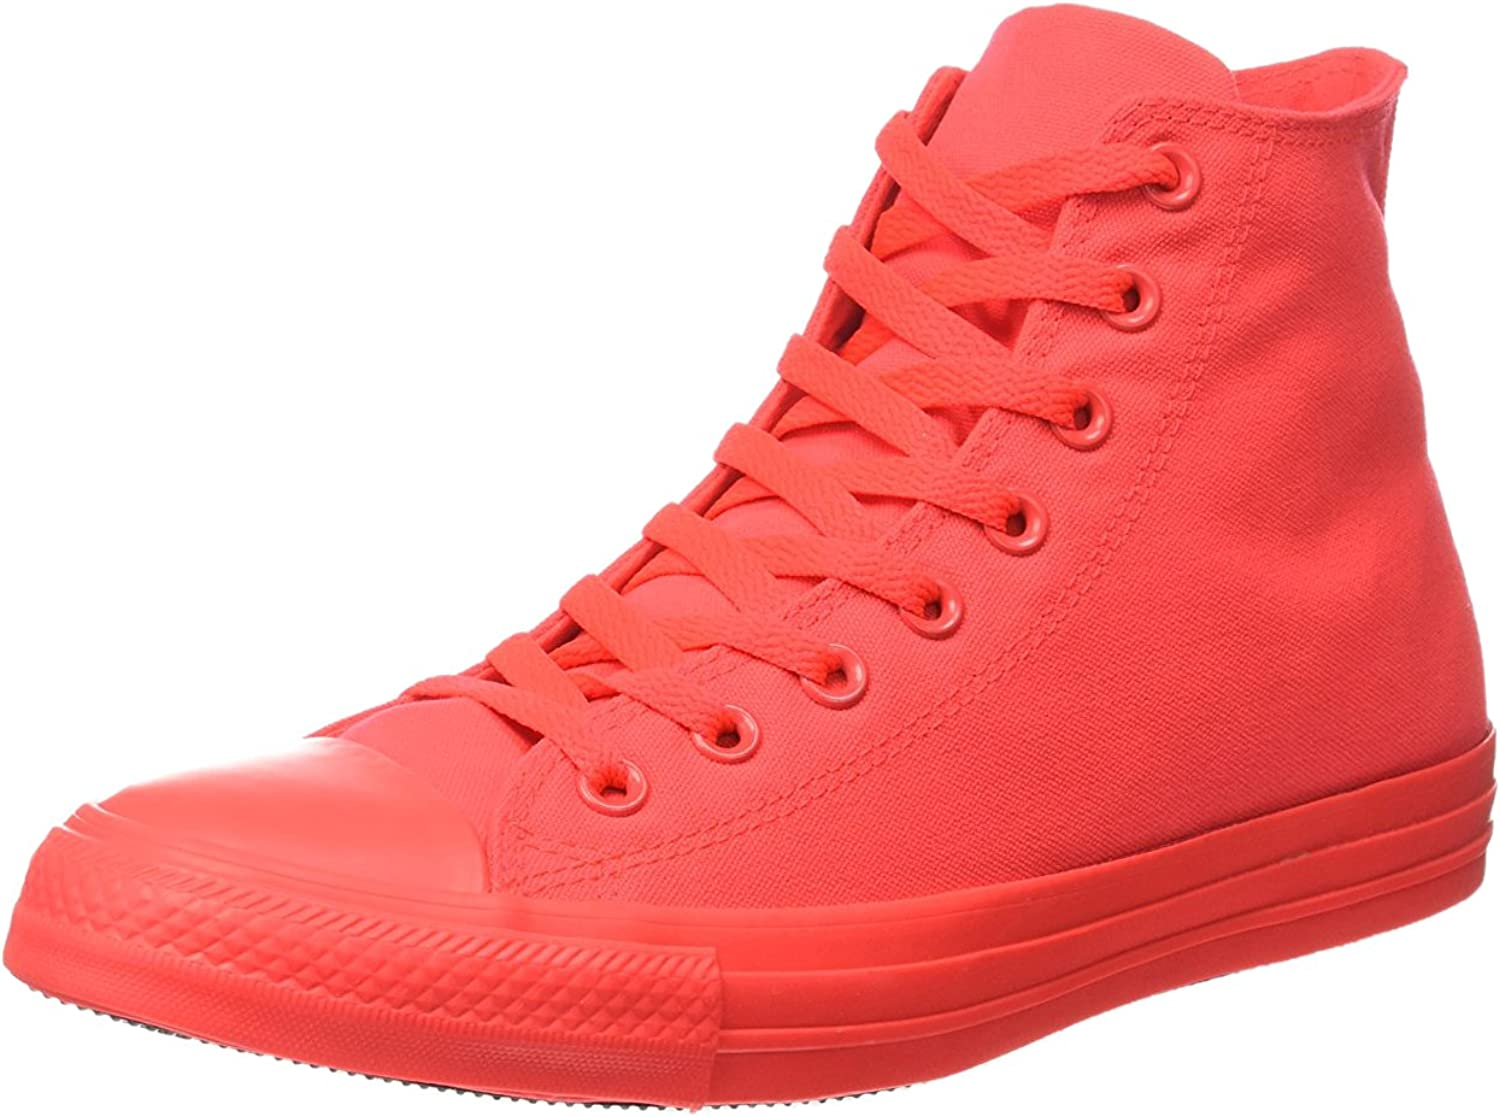 Converse All Star Hi Neon, Unisex Adults' Lace Up shoes